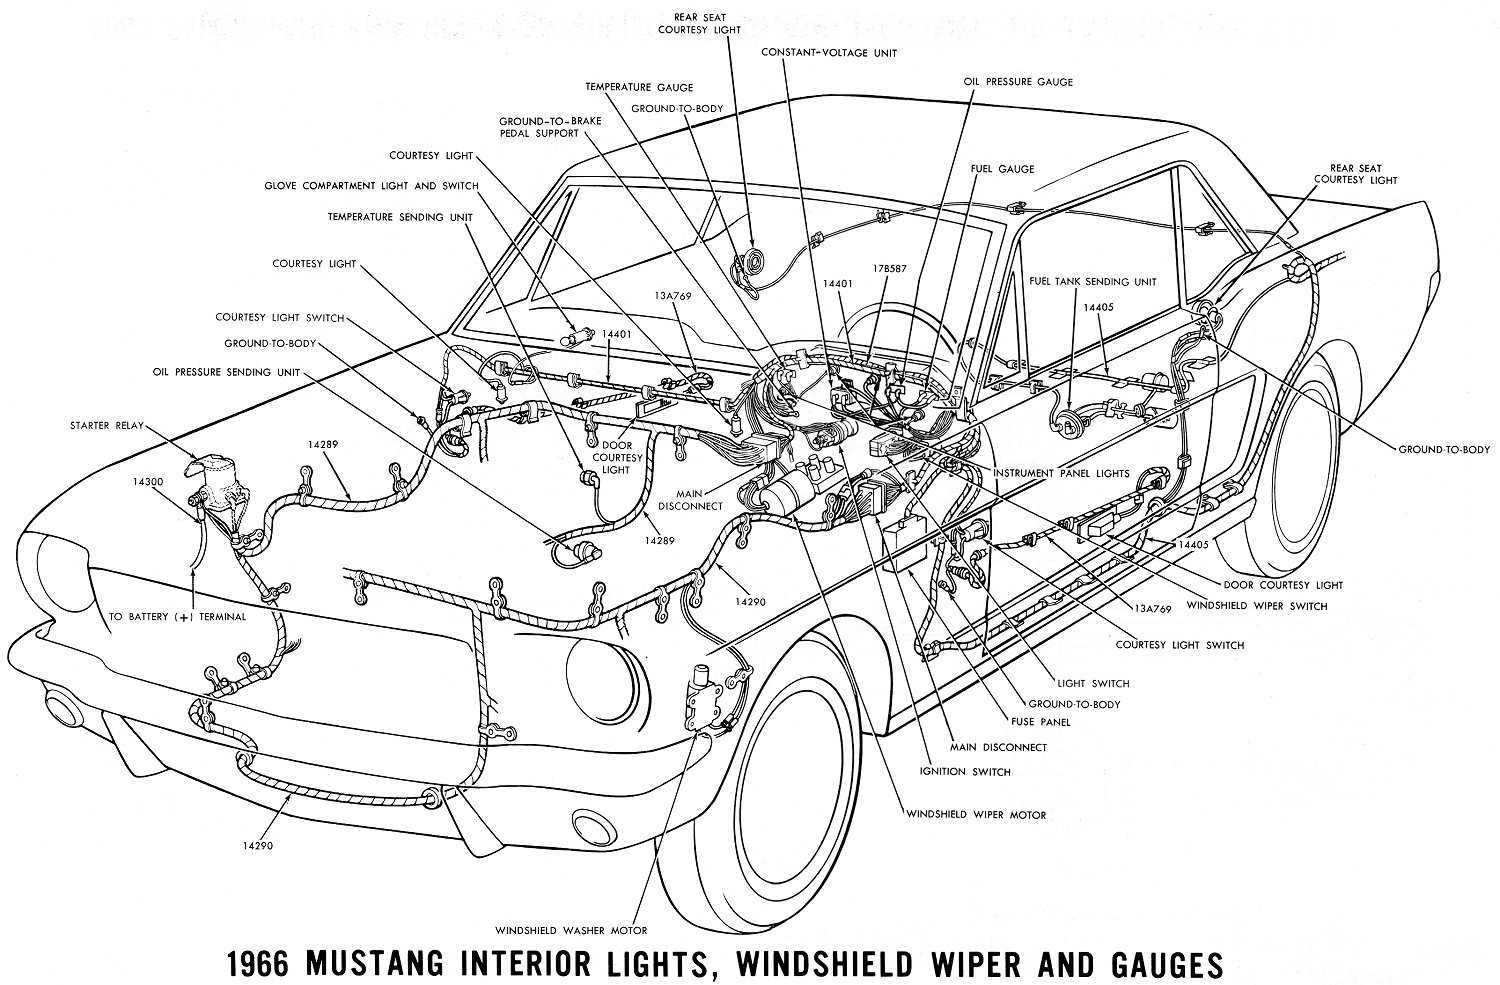 1966 Mustang Wiring Diagrams Average Joe Restoration Reverse Light Diagram Color Code Interior Lights Windshield Wiper And Gauges Schematic